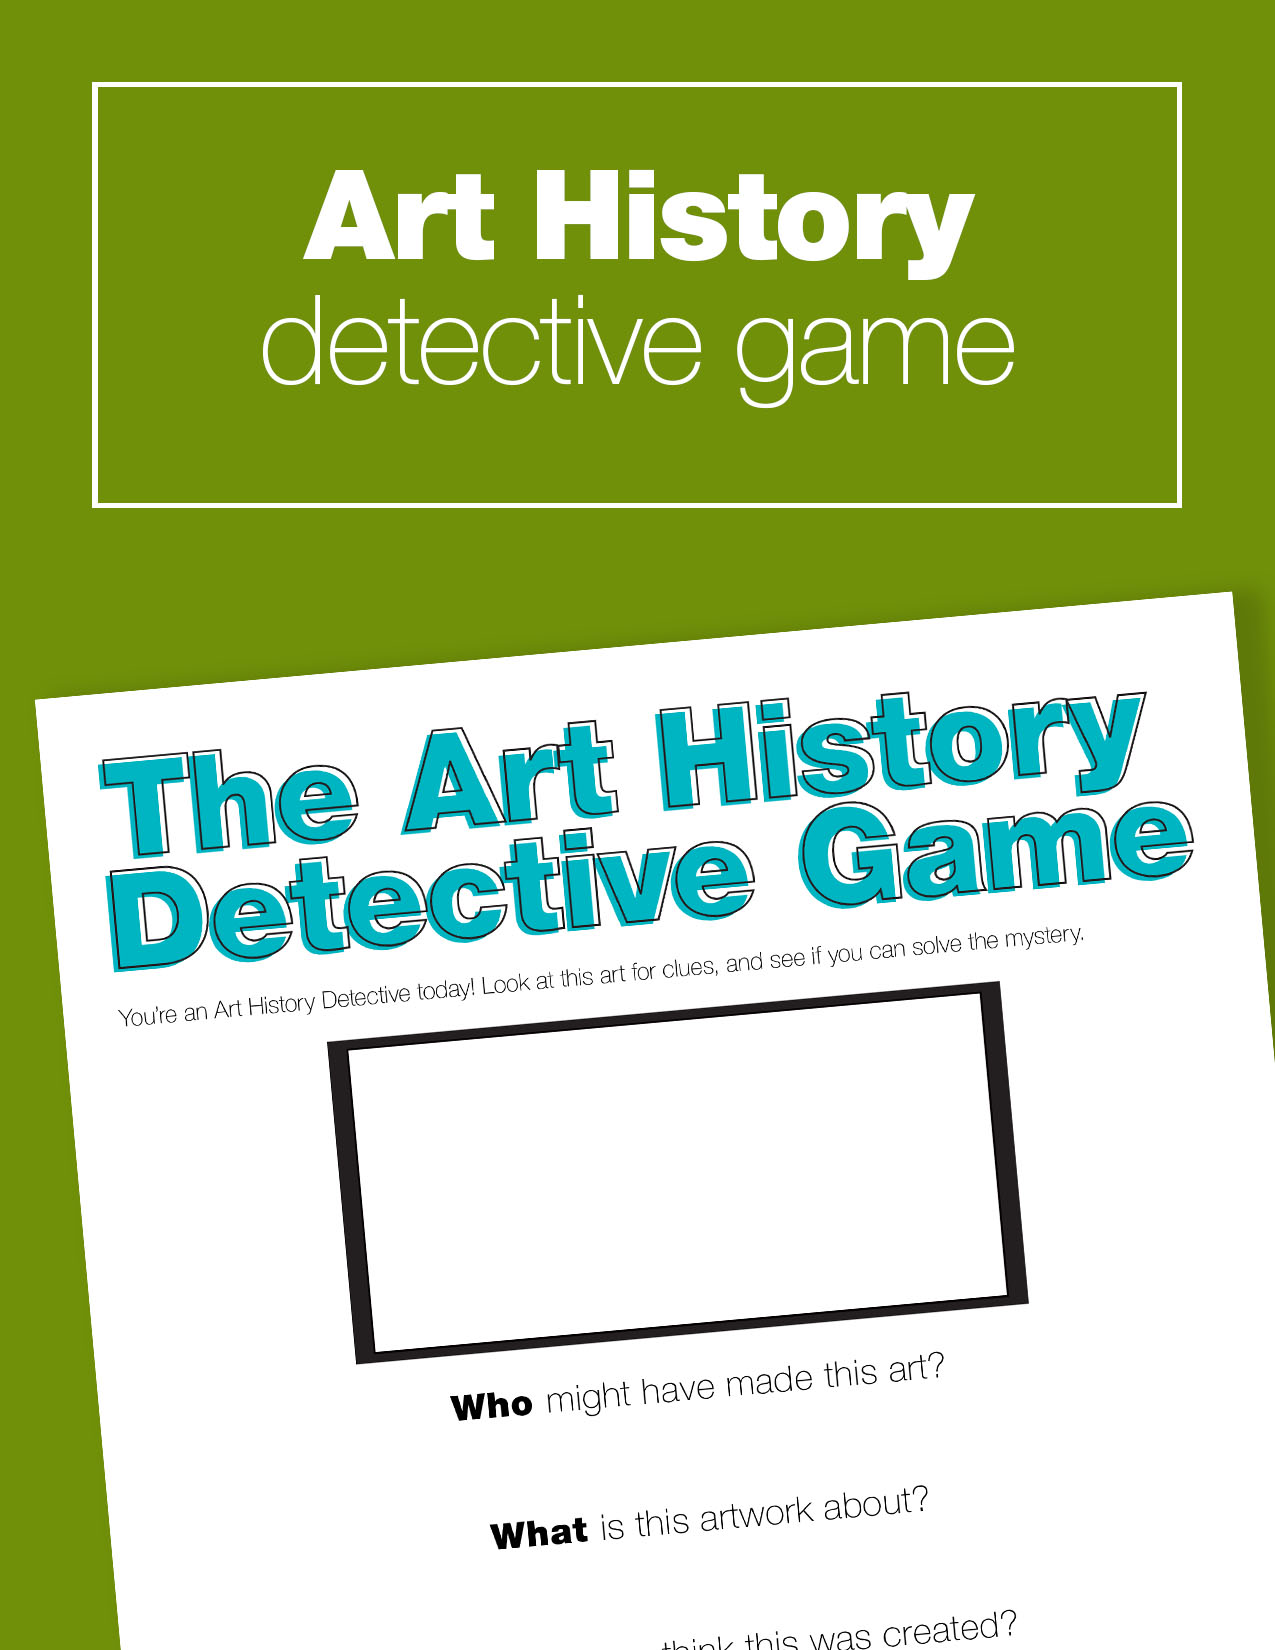 Free art history game for kids. Download the guide and play the Art History Detective Game!